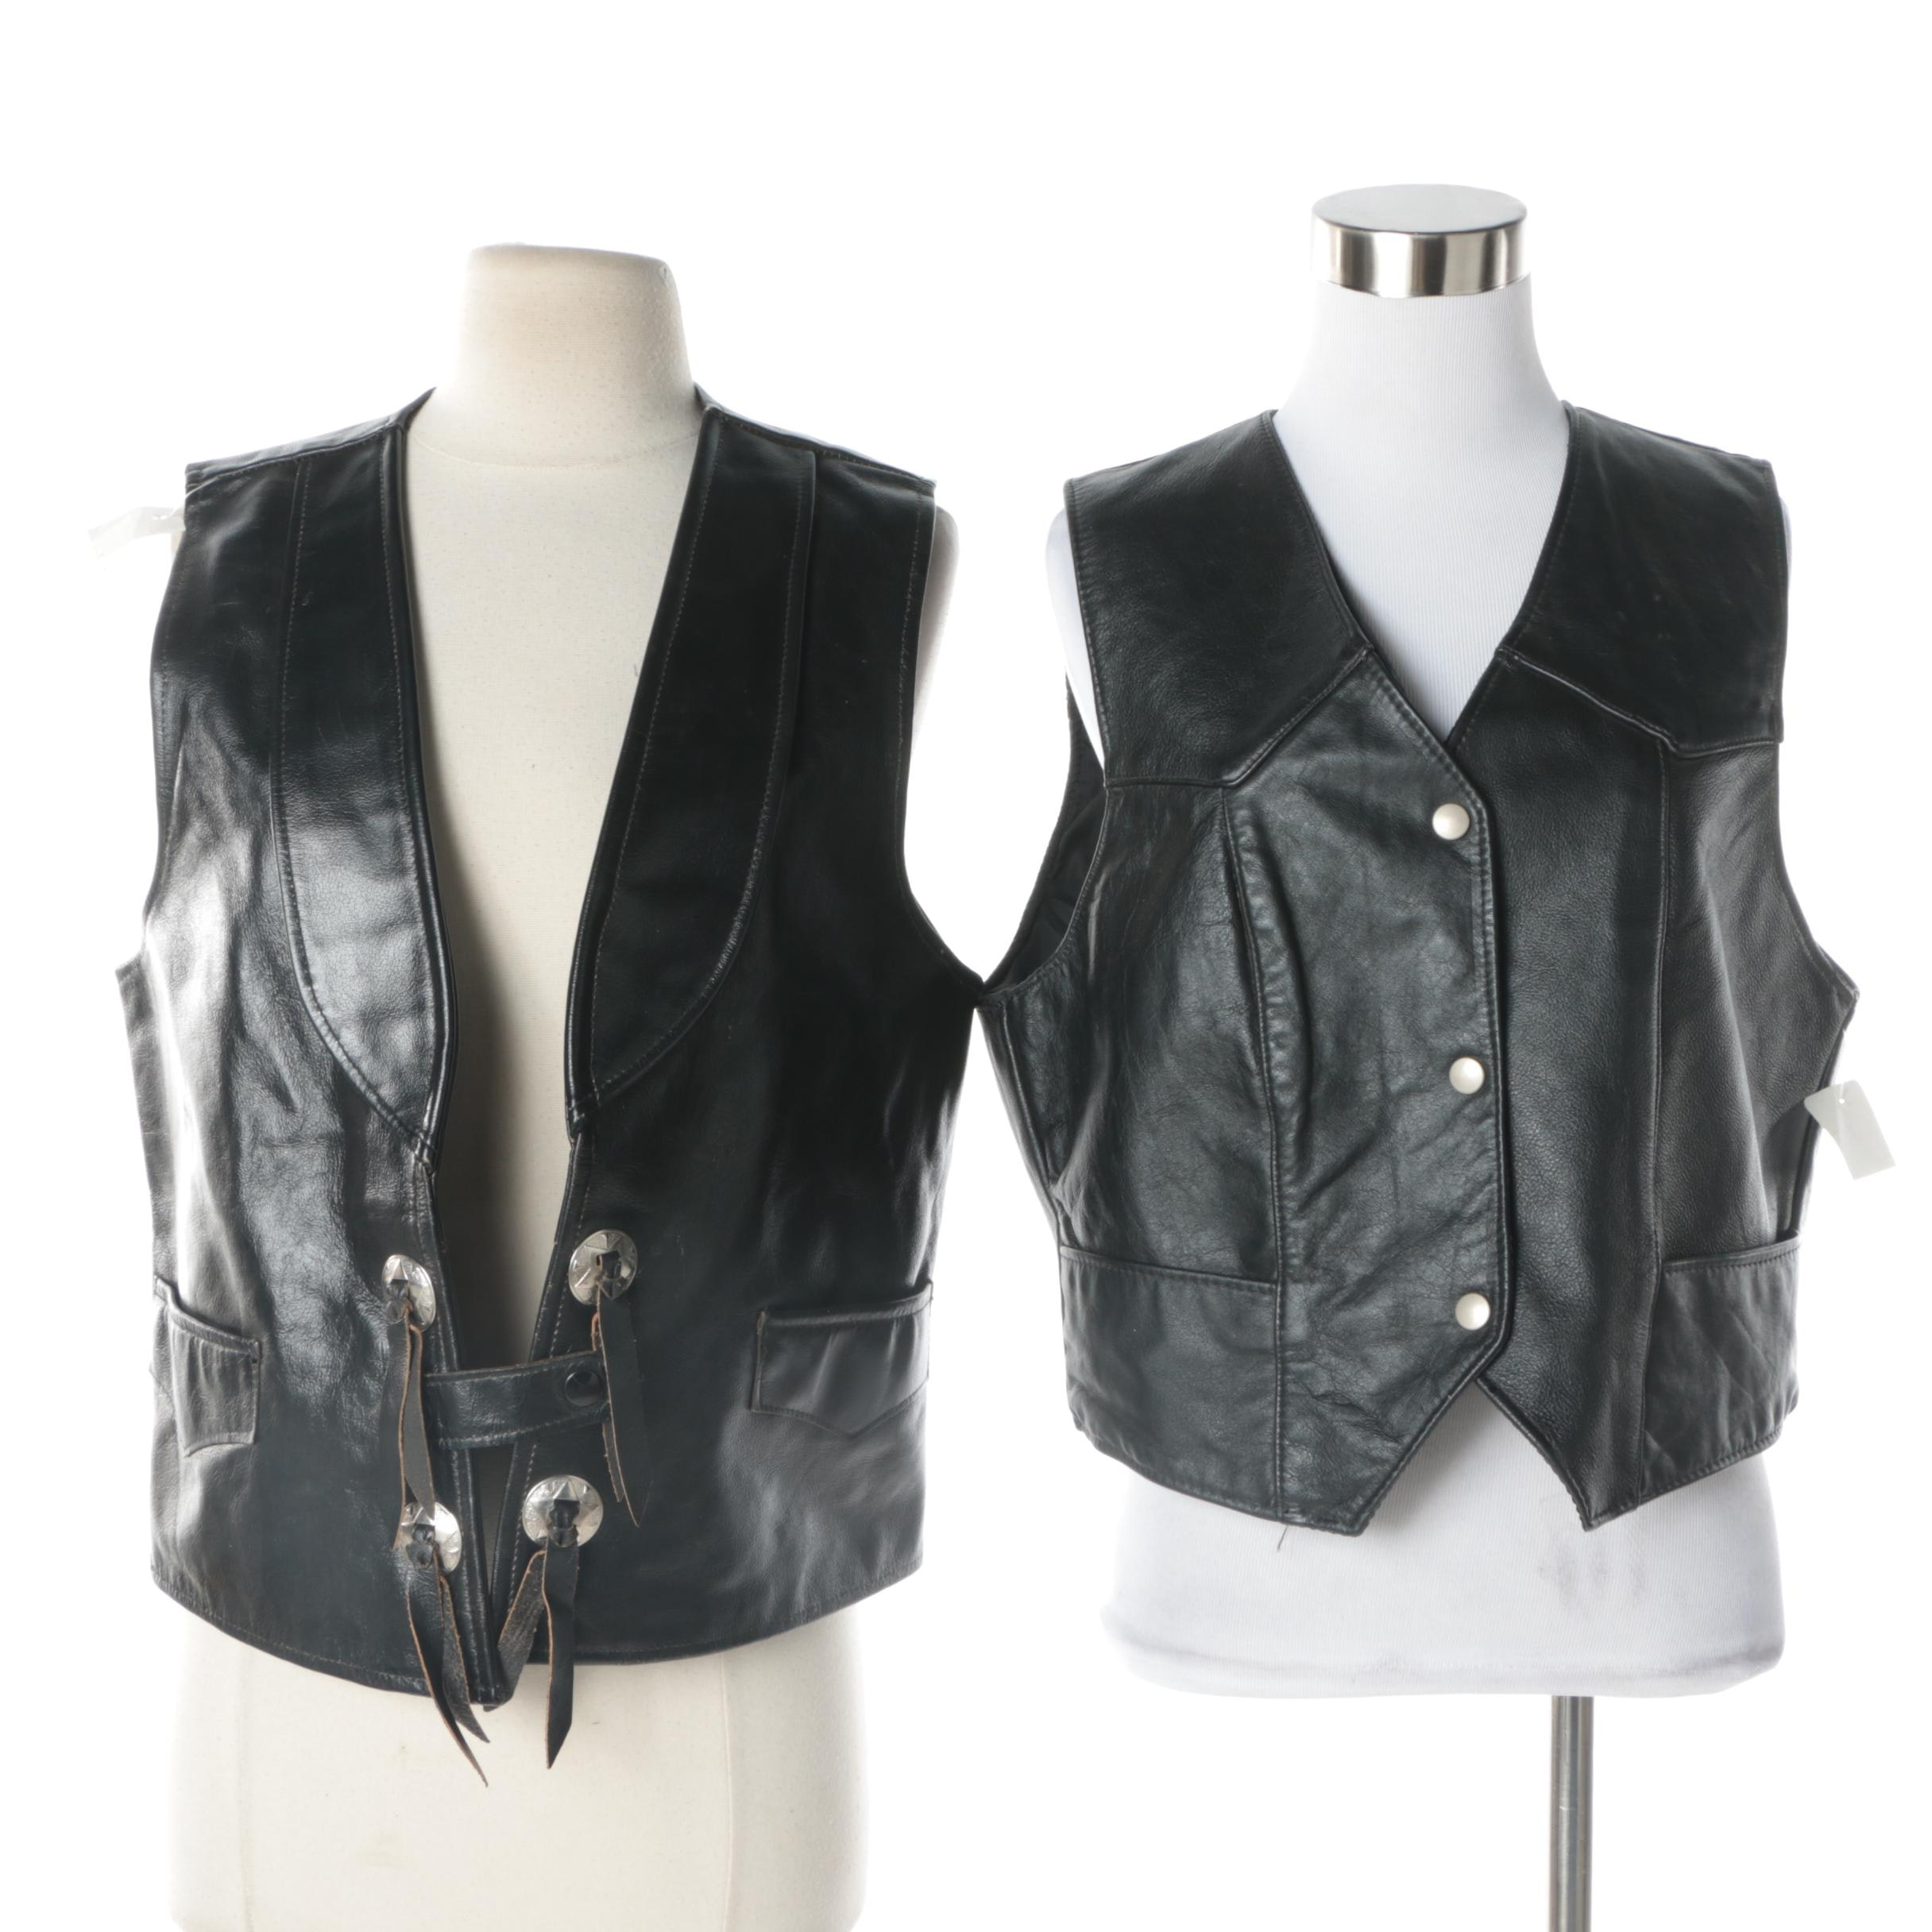 Women's Black Leather Vests Including Walker's and Steer Brand